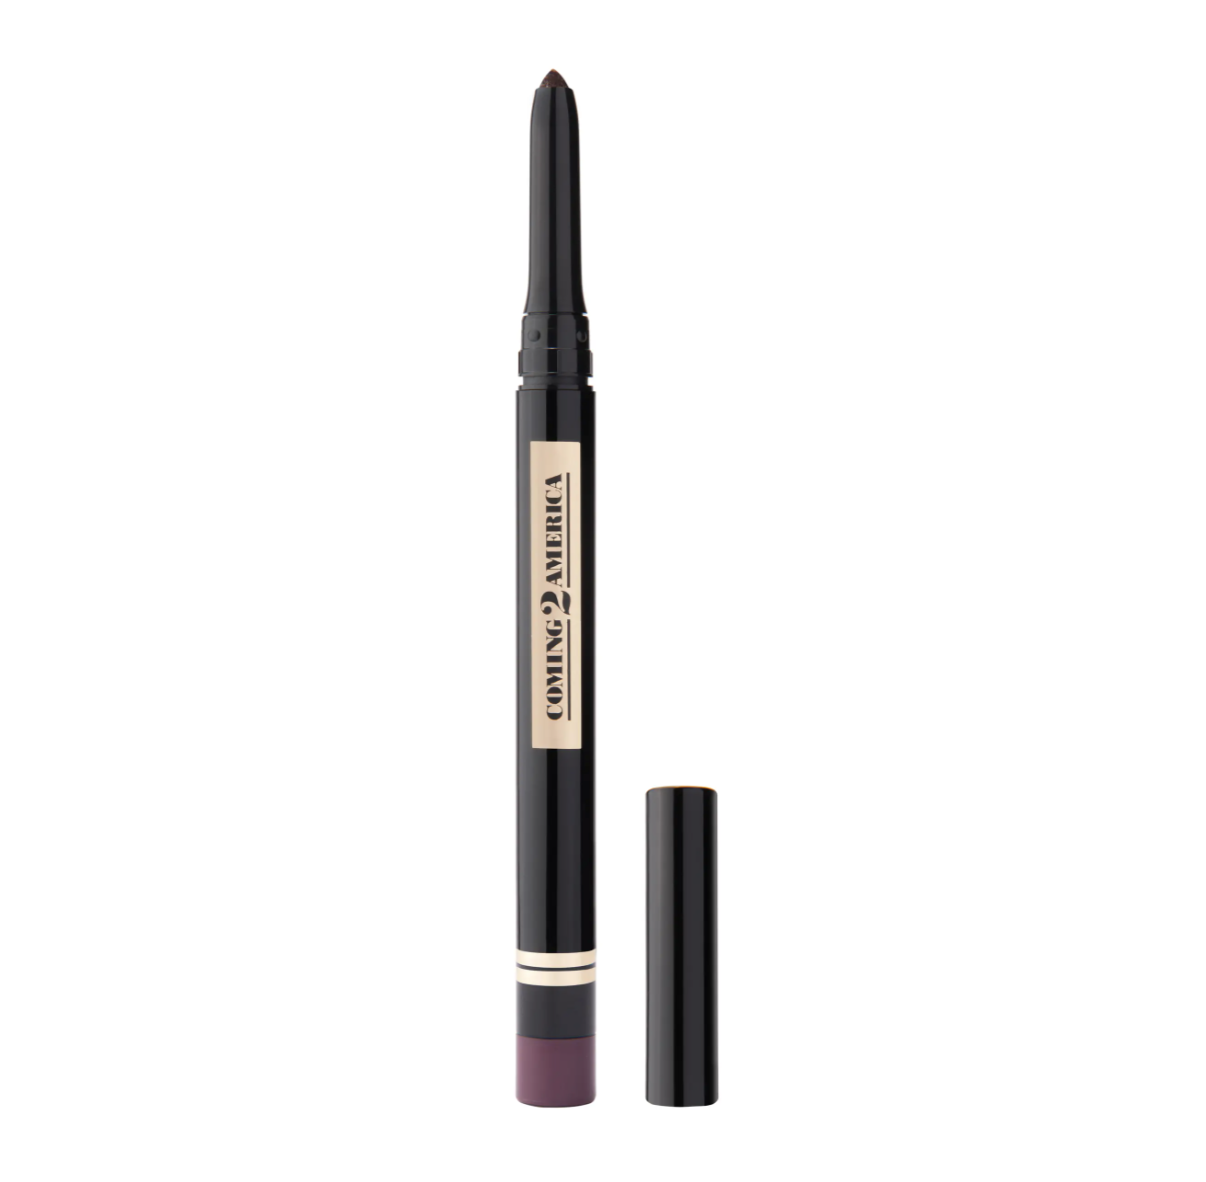 Uoma Beauty Black Magic 'Coming 2 America' Kajal Eyeliner